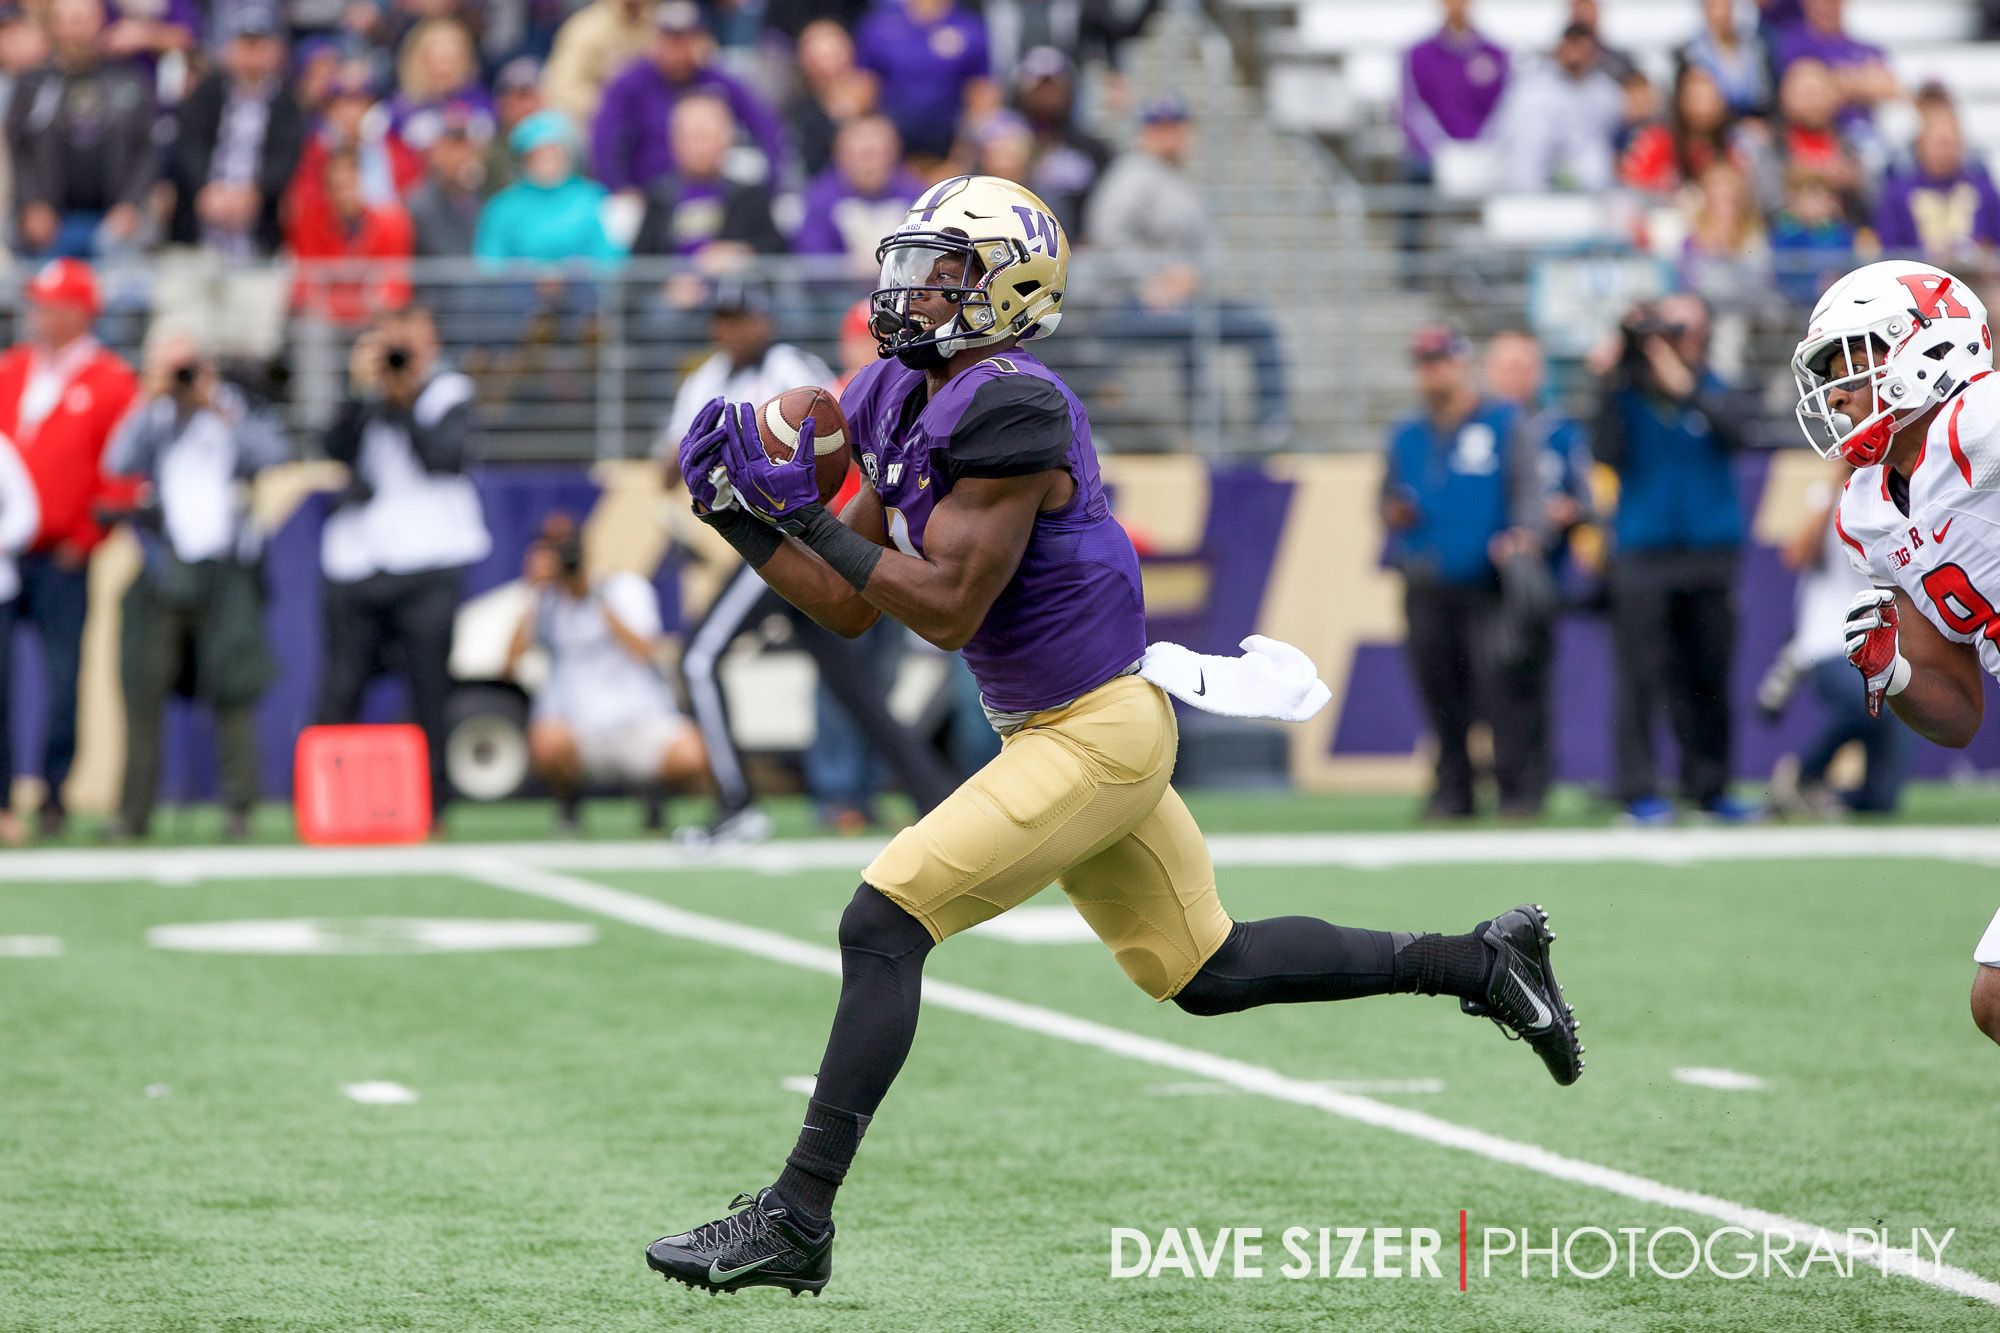 John Ross gets another deep pass right in stride for his second score of the day.